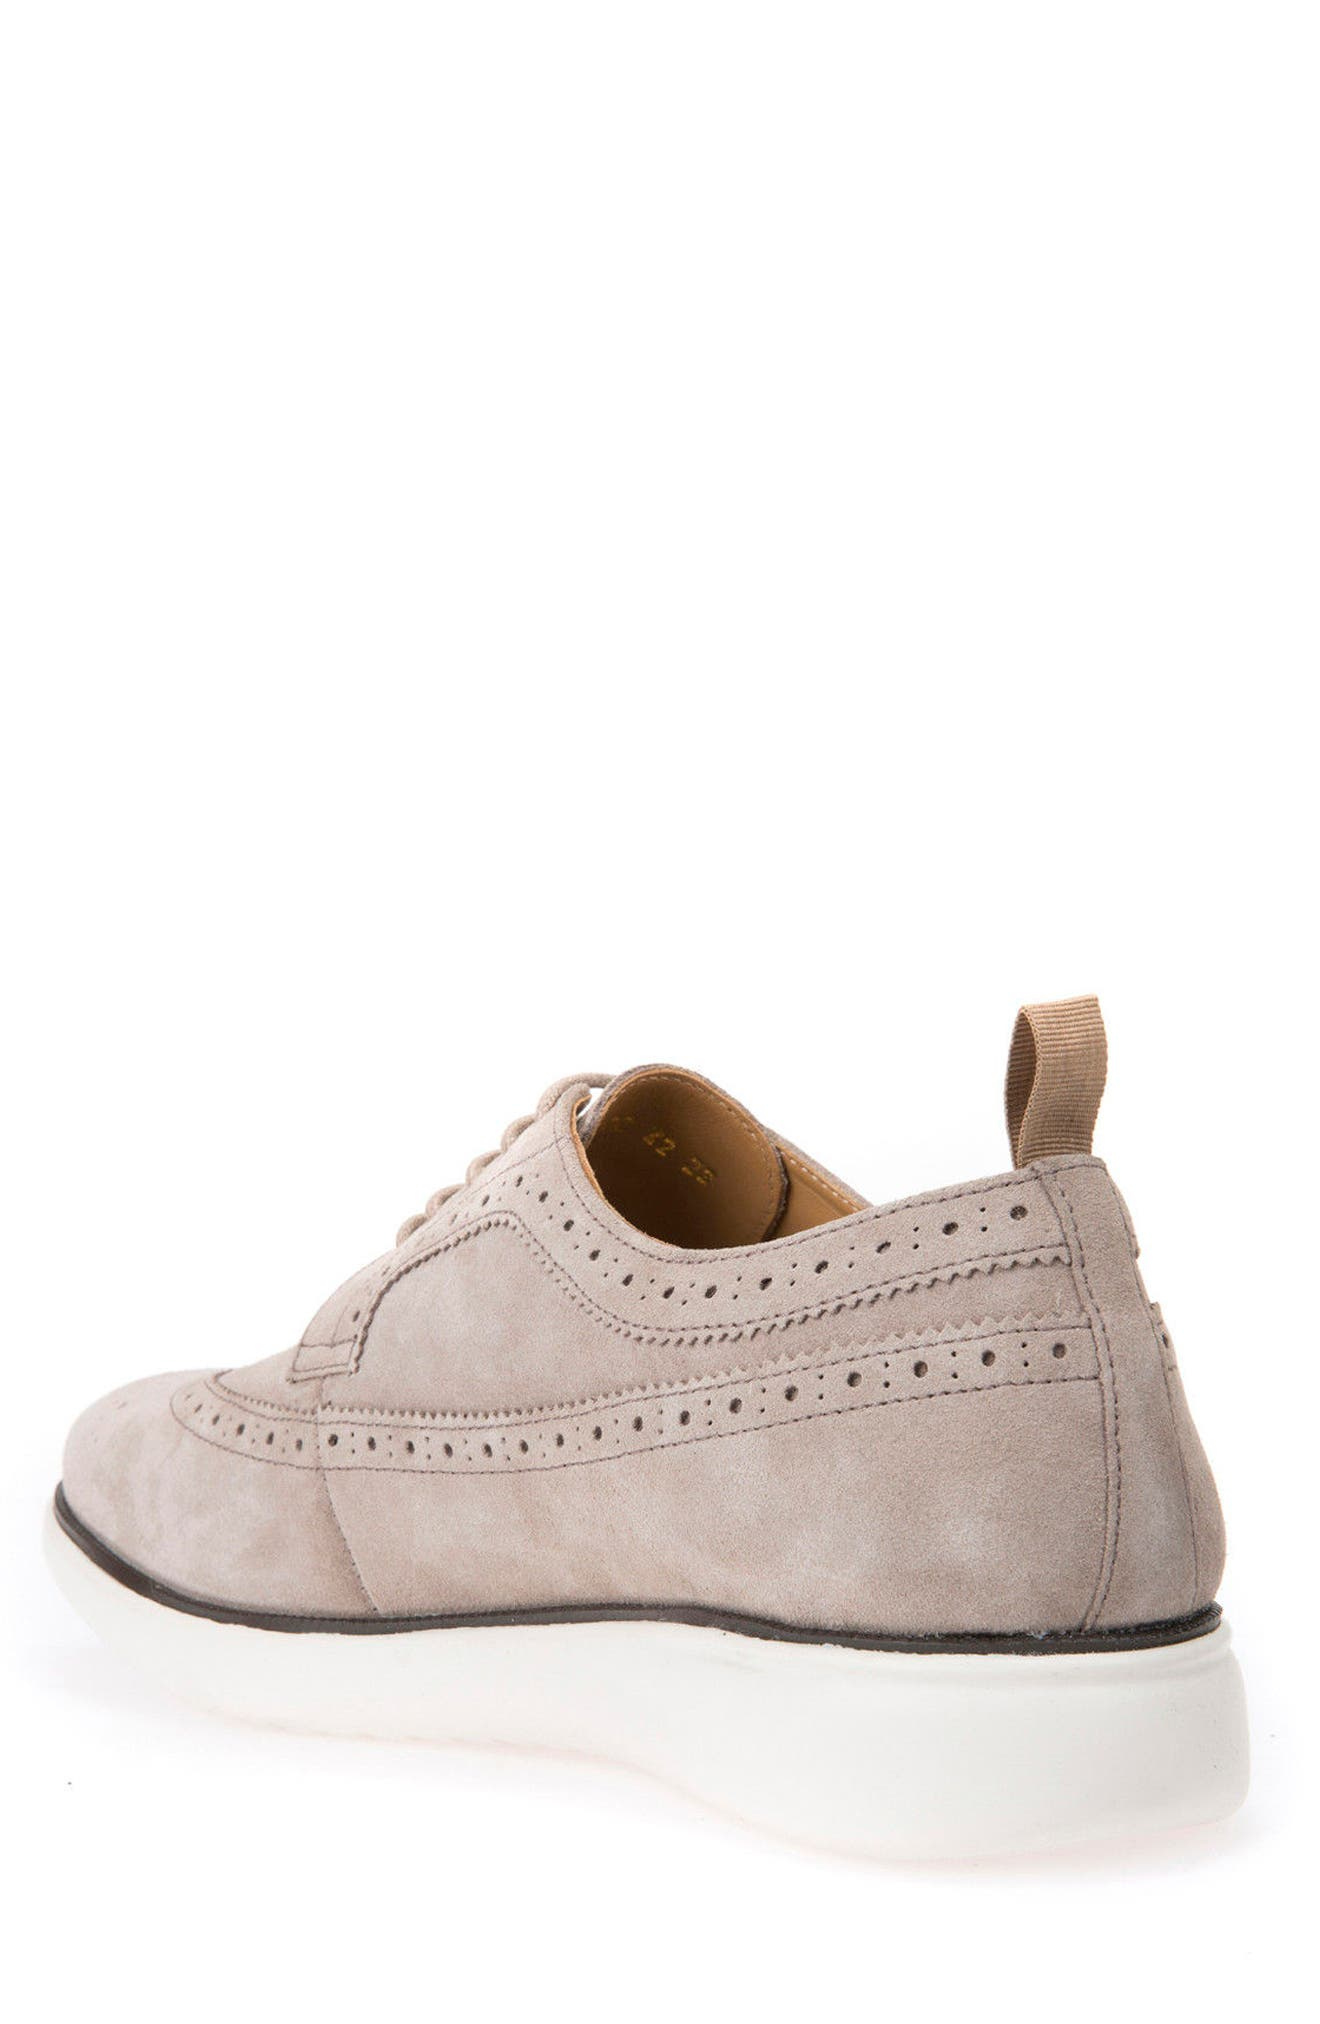 Winfred 2 Wingtip,                             Alternate thumbnail 2, color,                             Taupe Suede